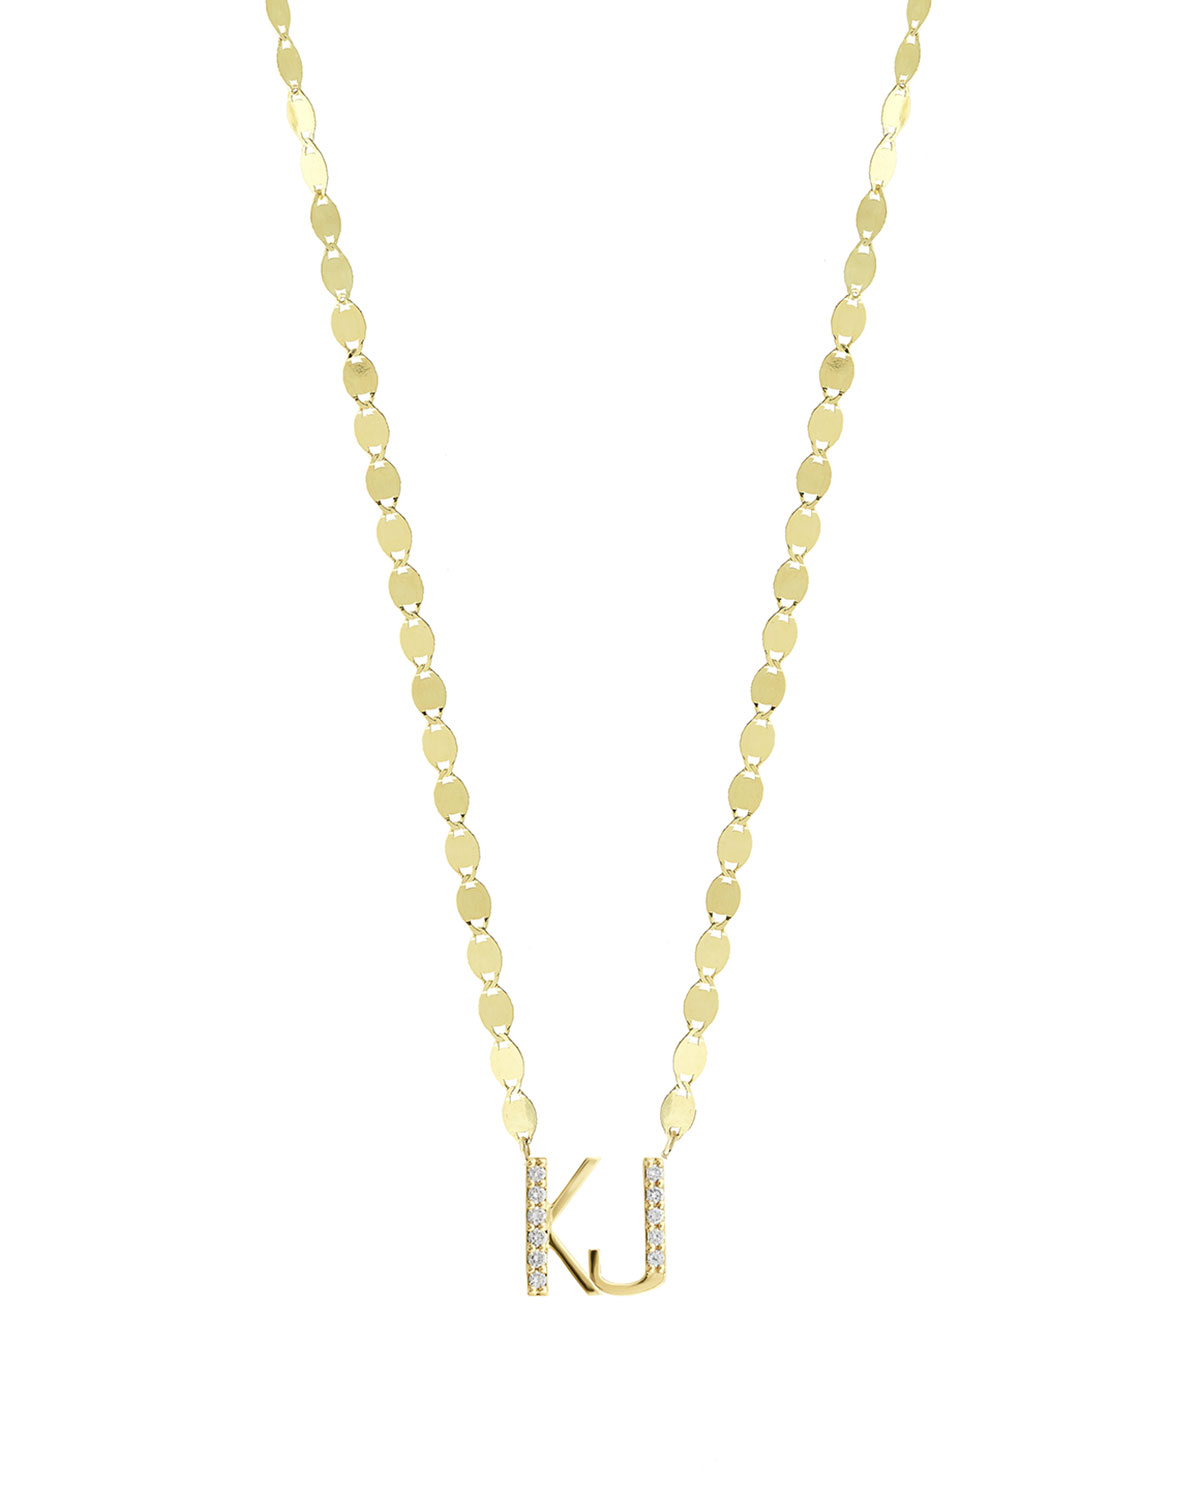 Lana Gold Personalized Two Letter Pendant Necklace w/ Diamonds